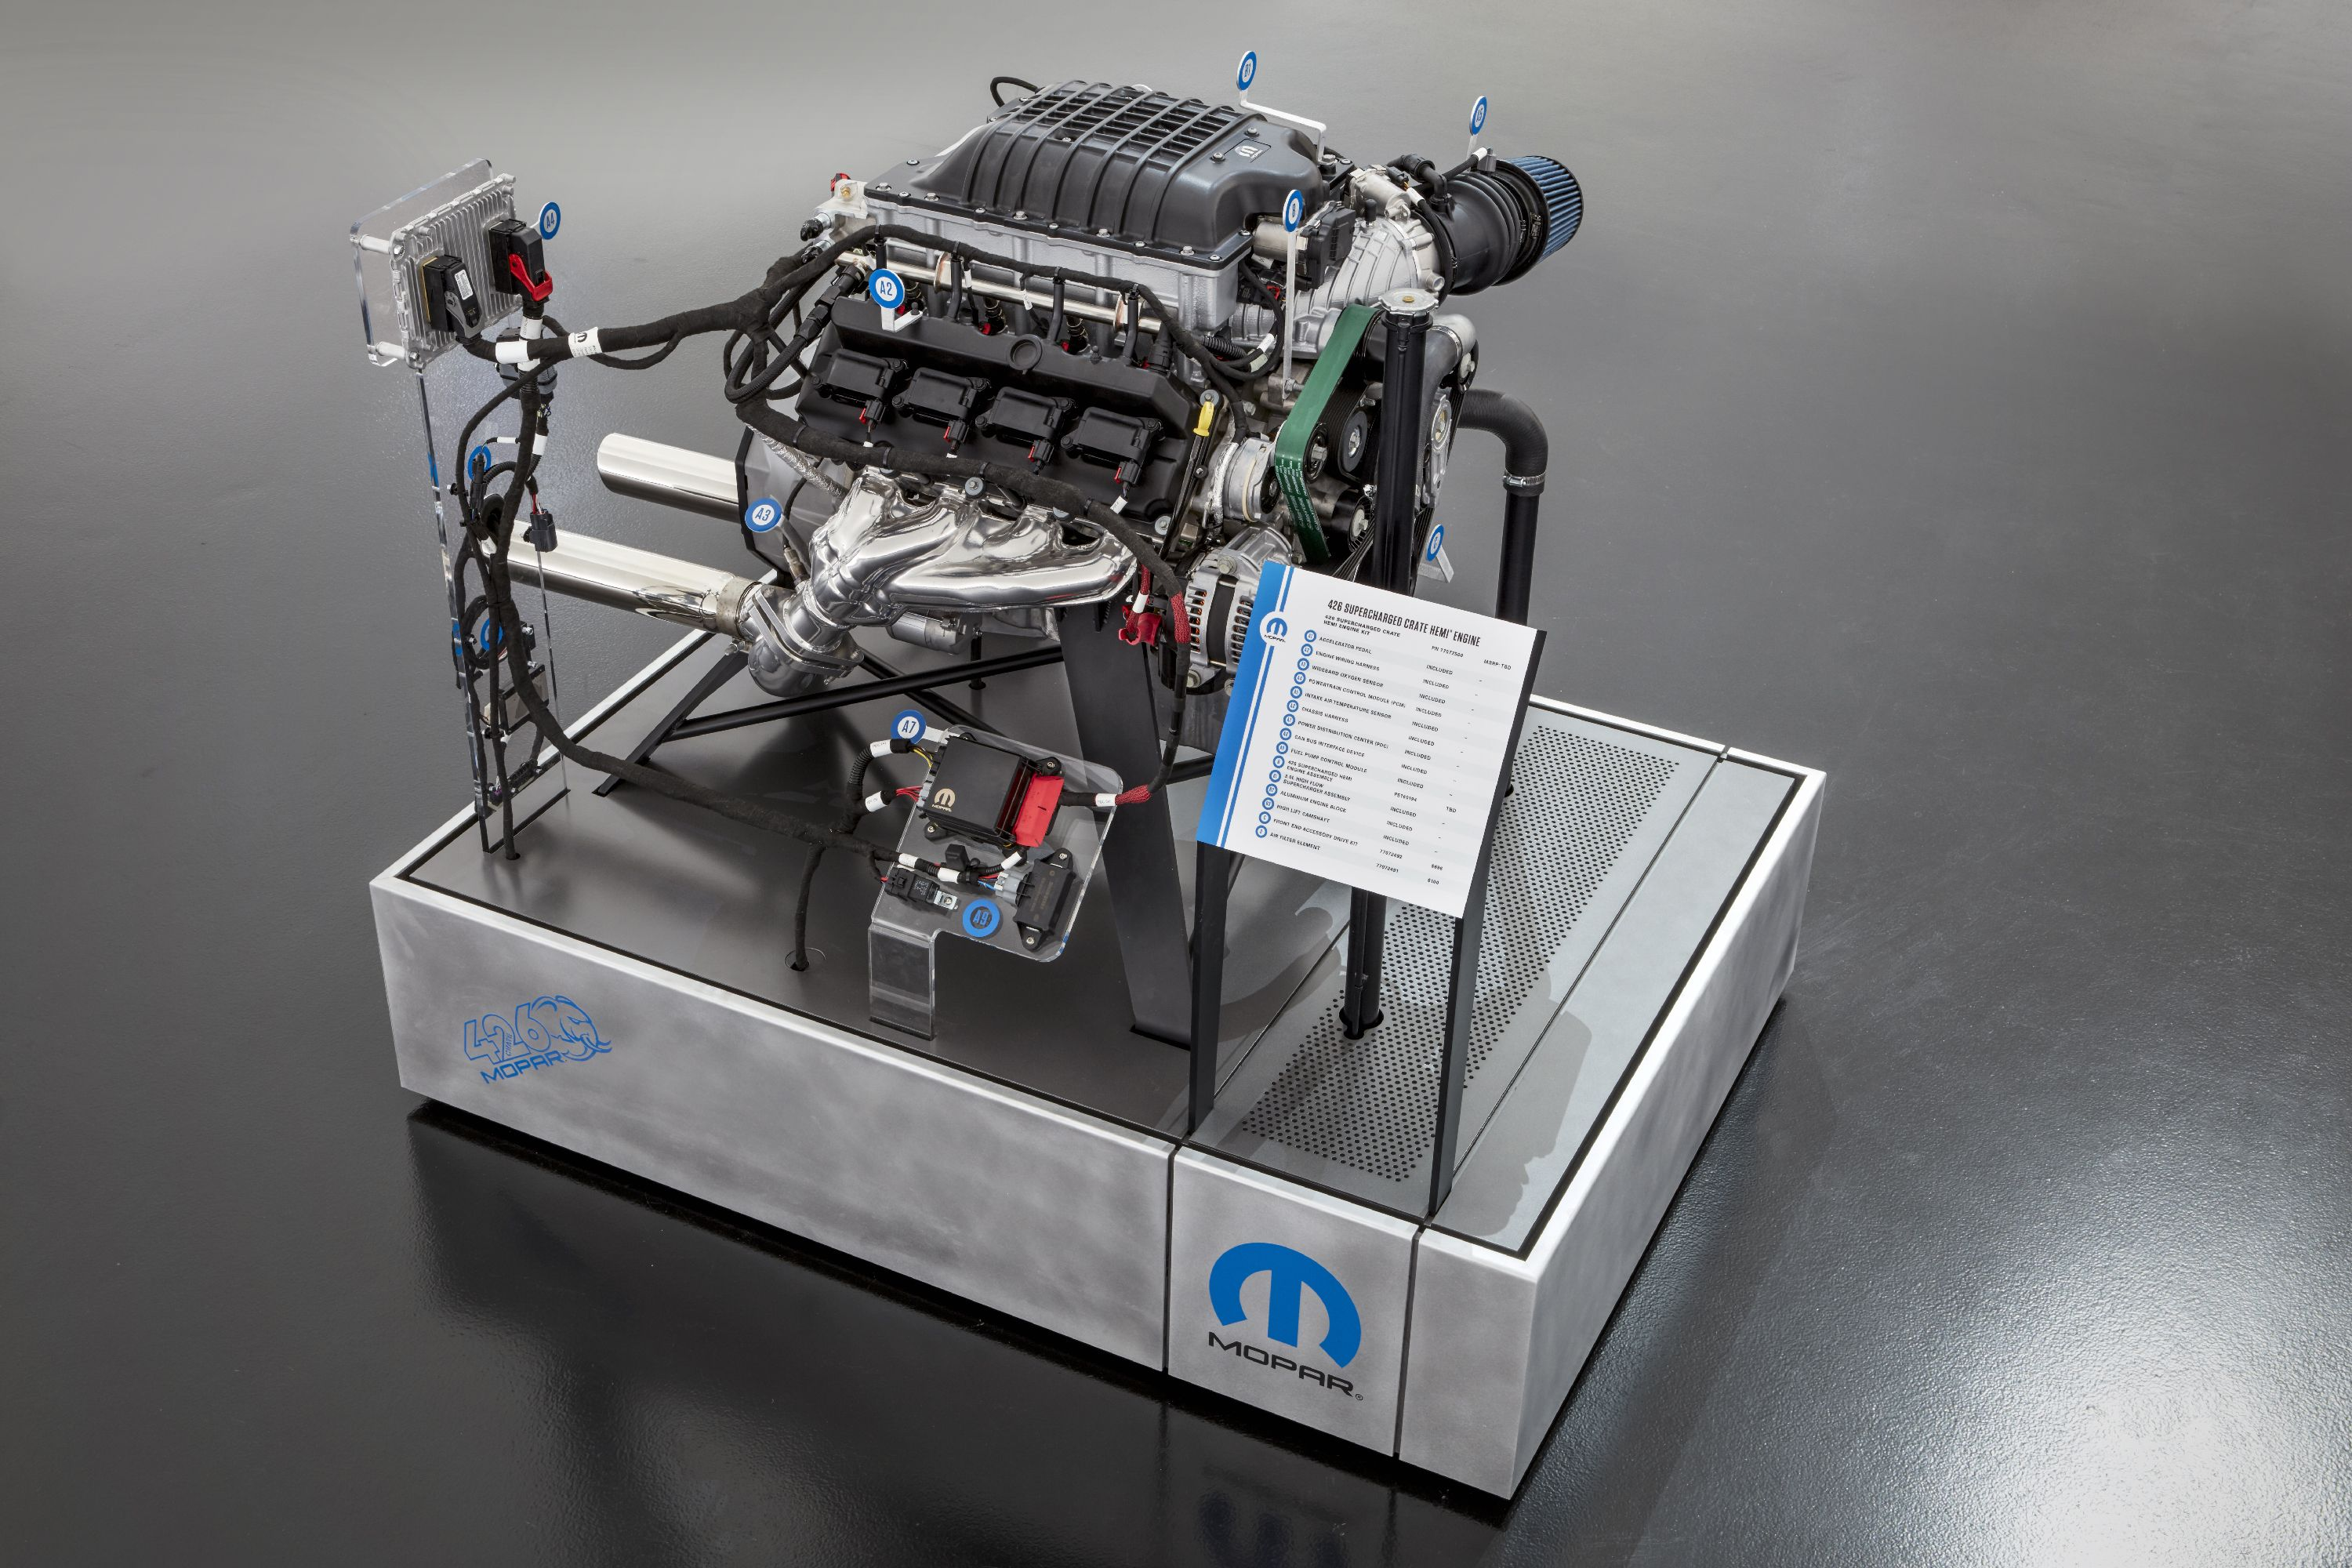 Chrysler S 1000 Hp Mopar 426 Hemi Crate Engine Is Sold Out Pricing Details